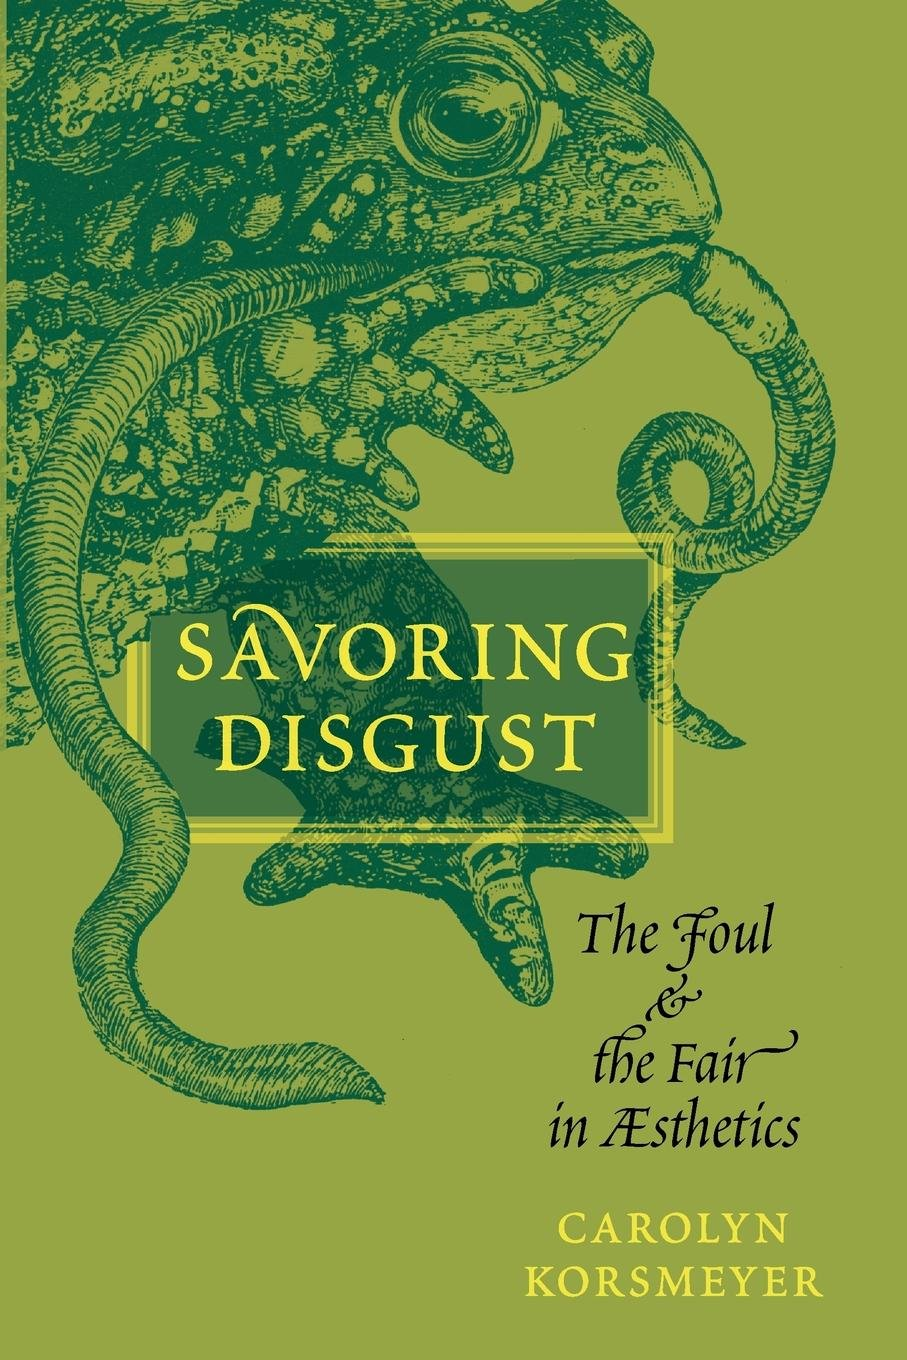 Savoring Disgust: The Foul and the Fair in Aesthetics: Amazon.co.uk ...